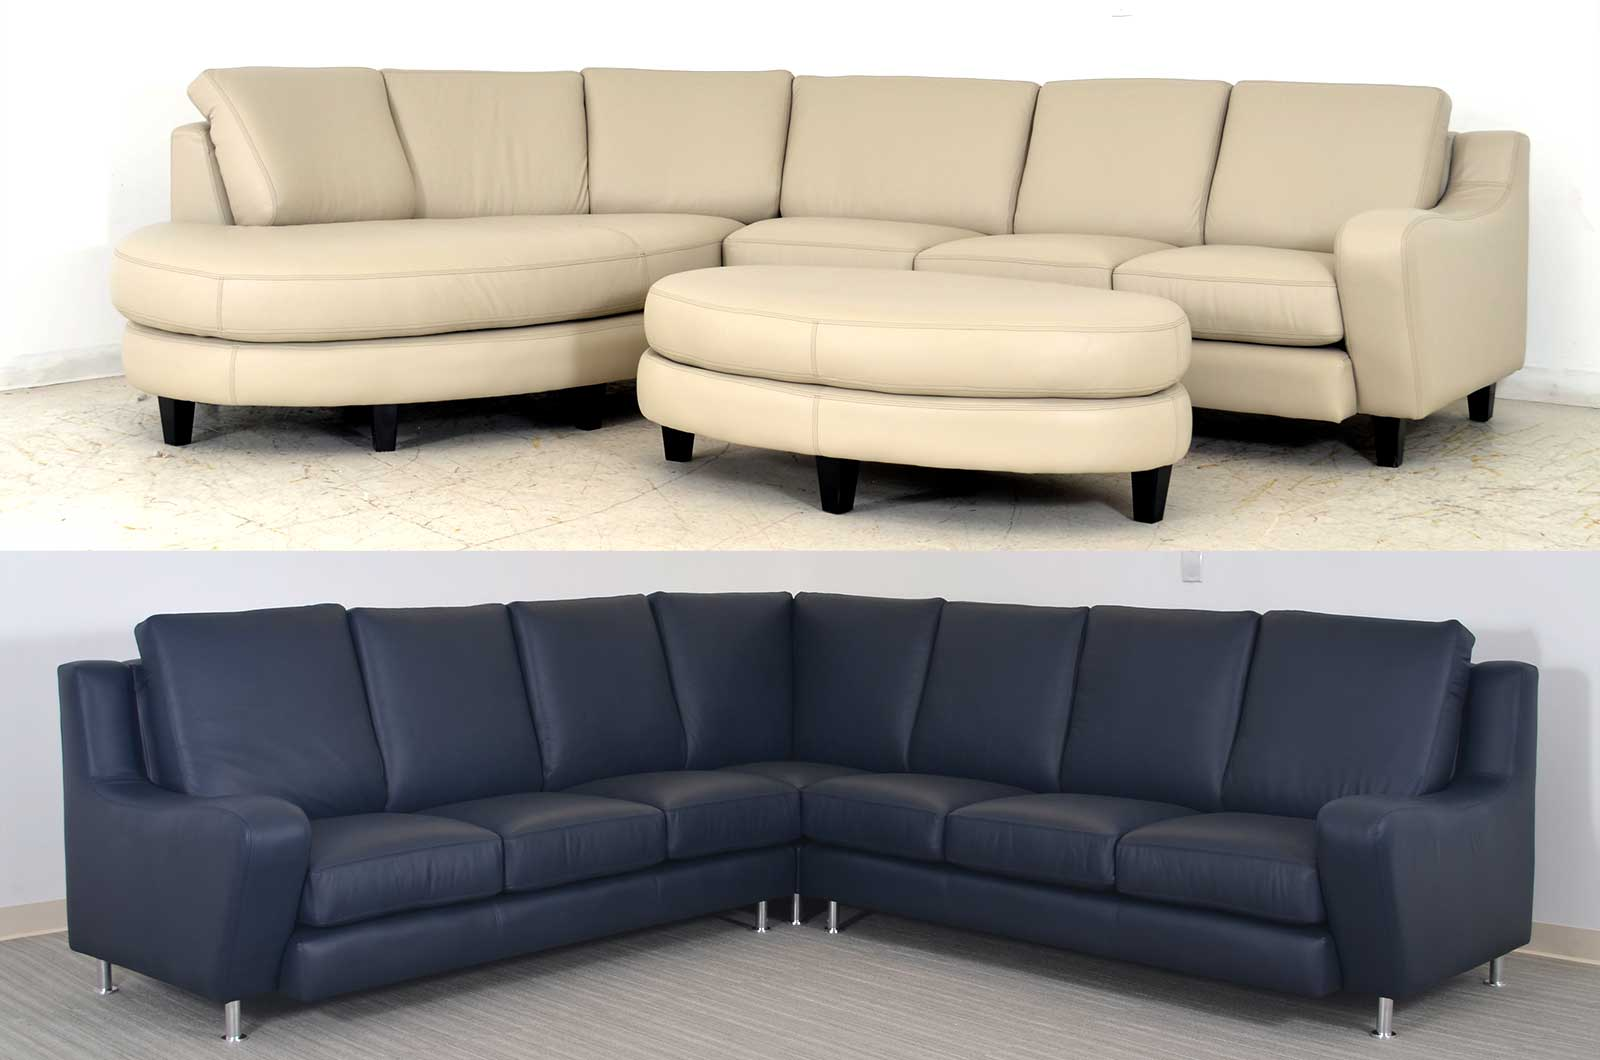 100 Sofa Ottoman Best 25 Tufted Sectional